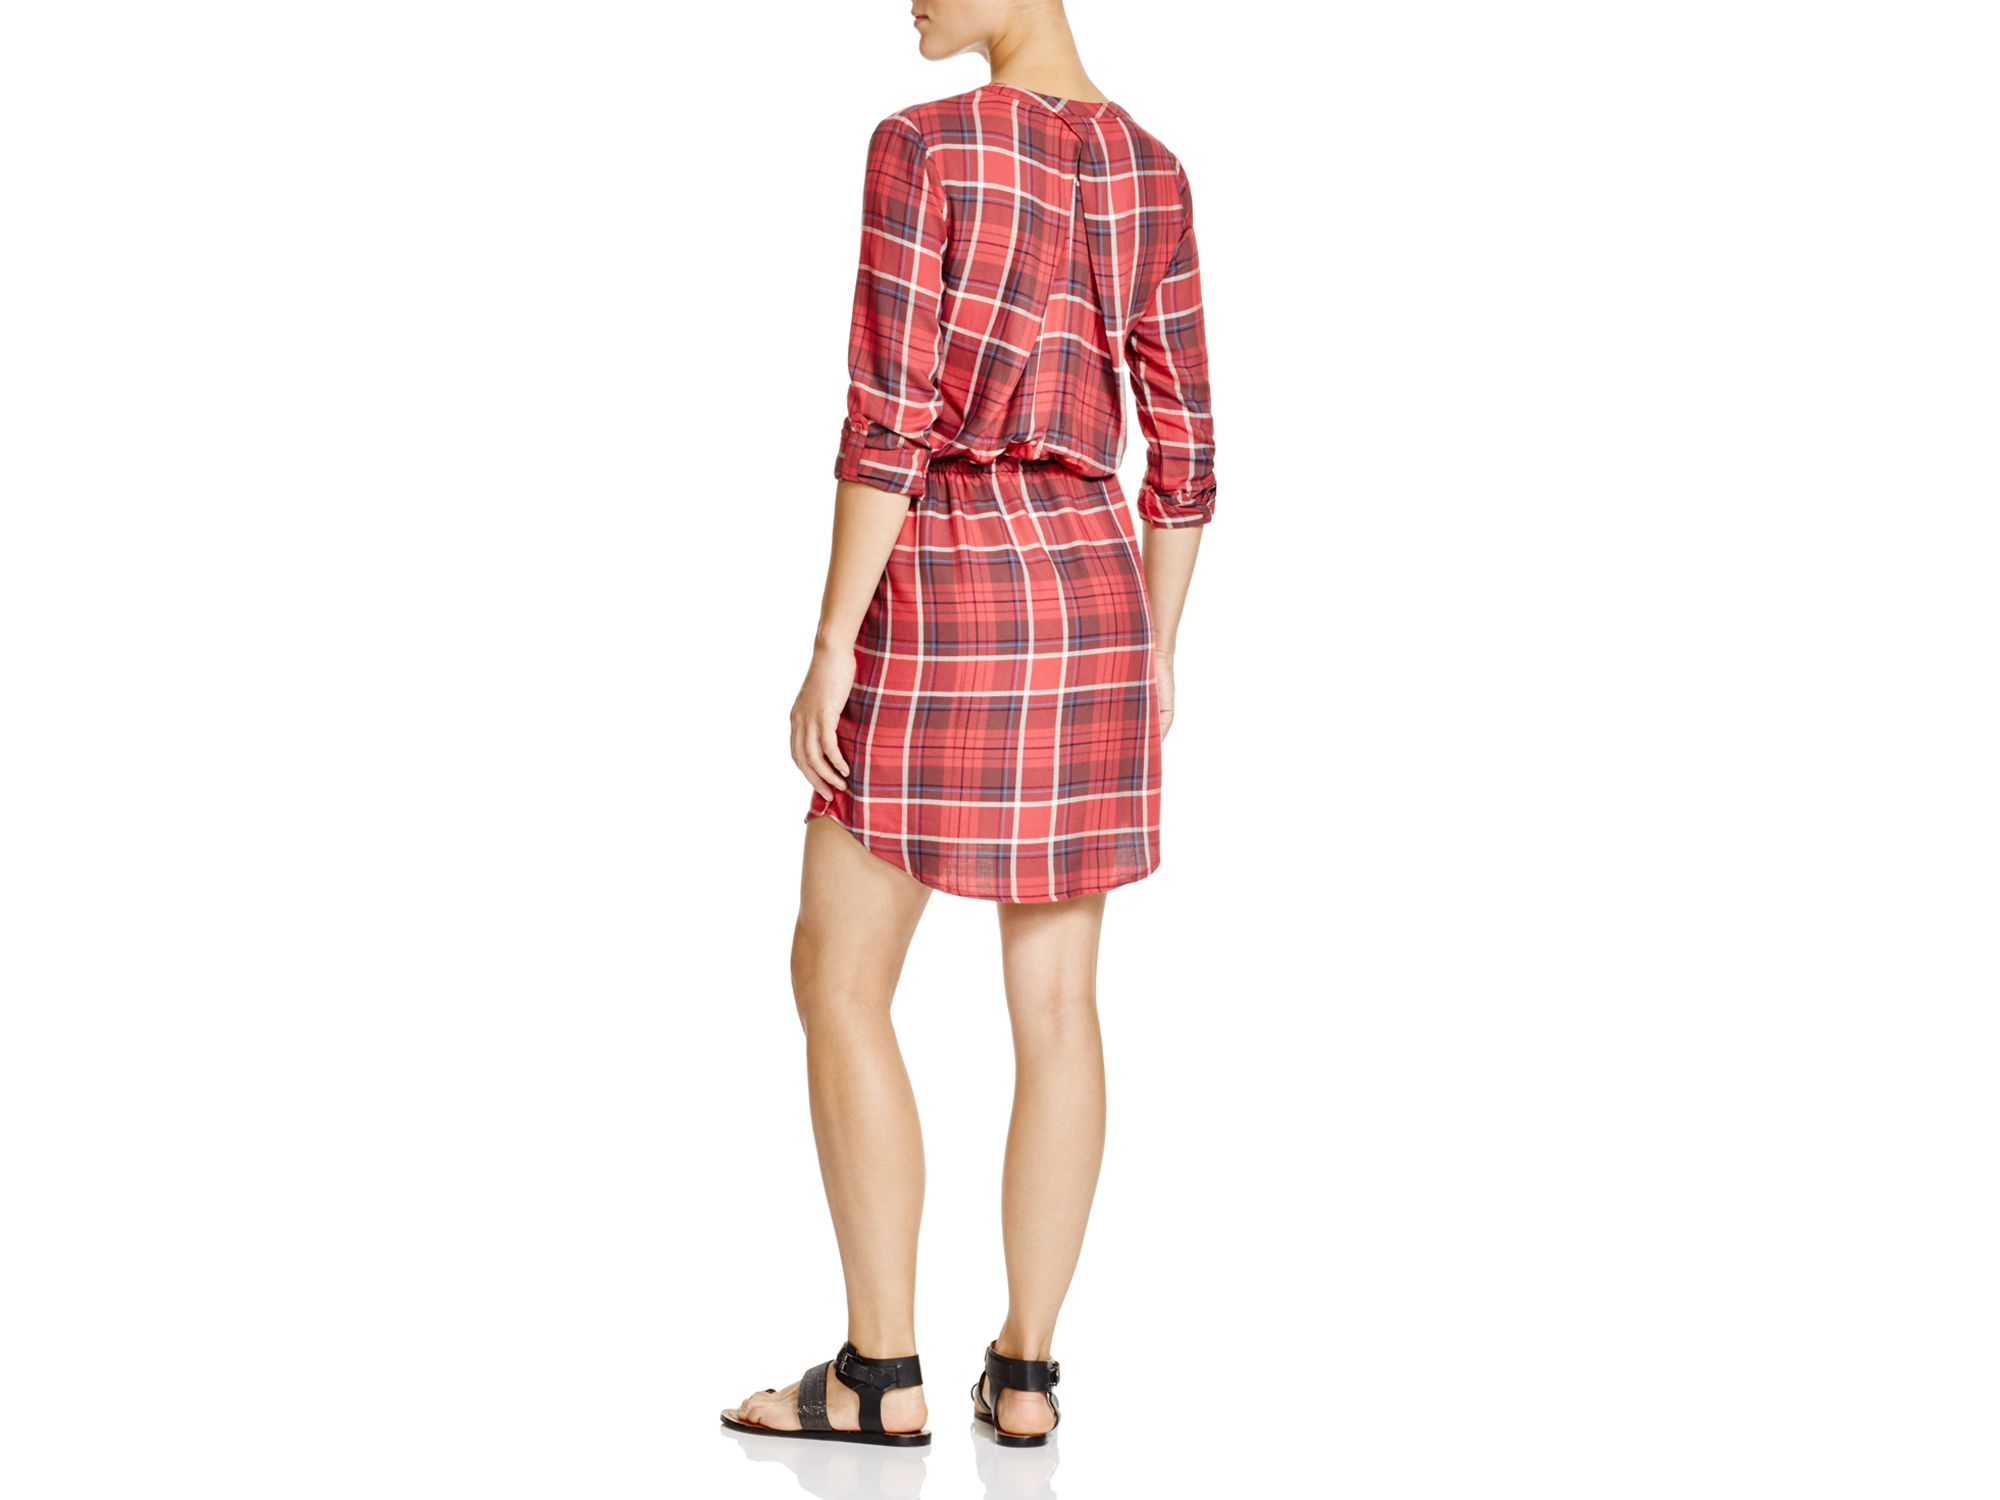 Soft joie cassina plaid shirt dress in pink lyst for Soft joie plaid shirt